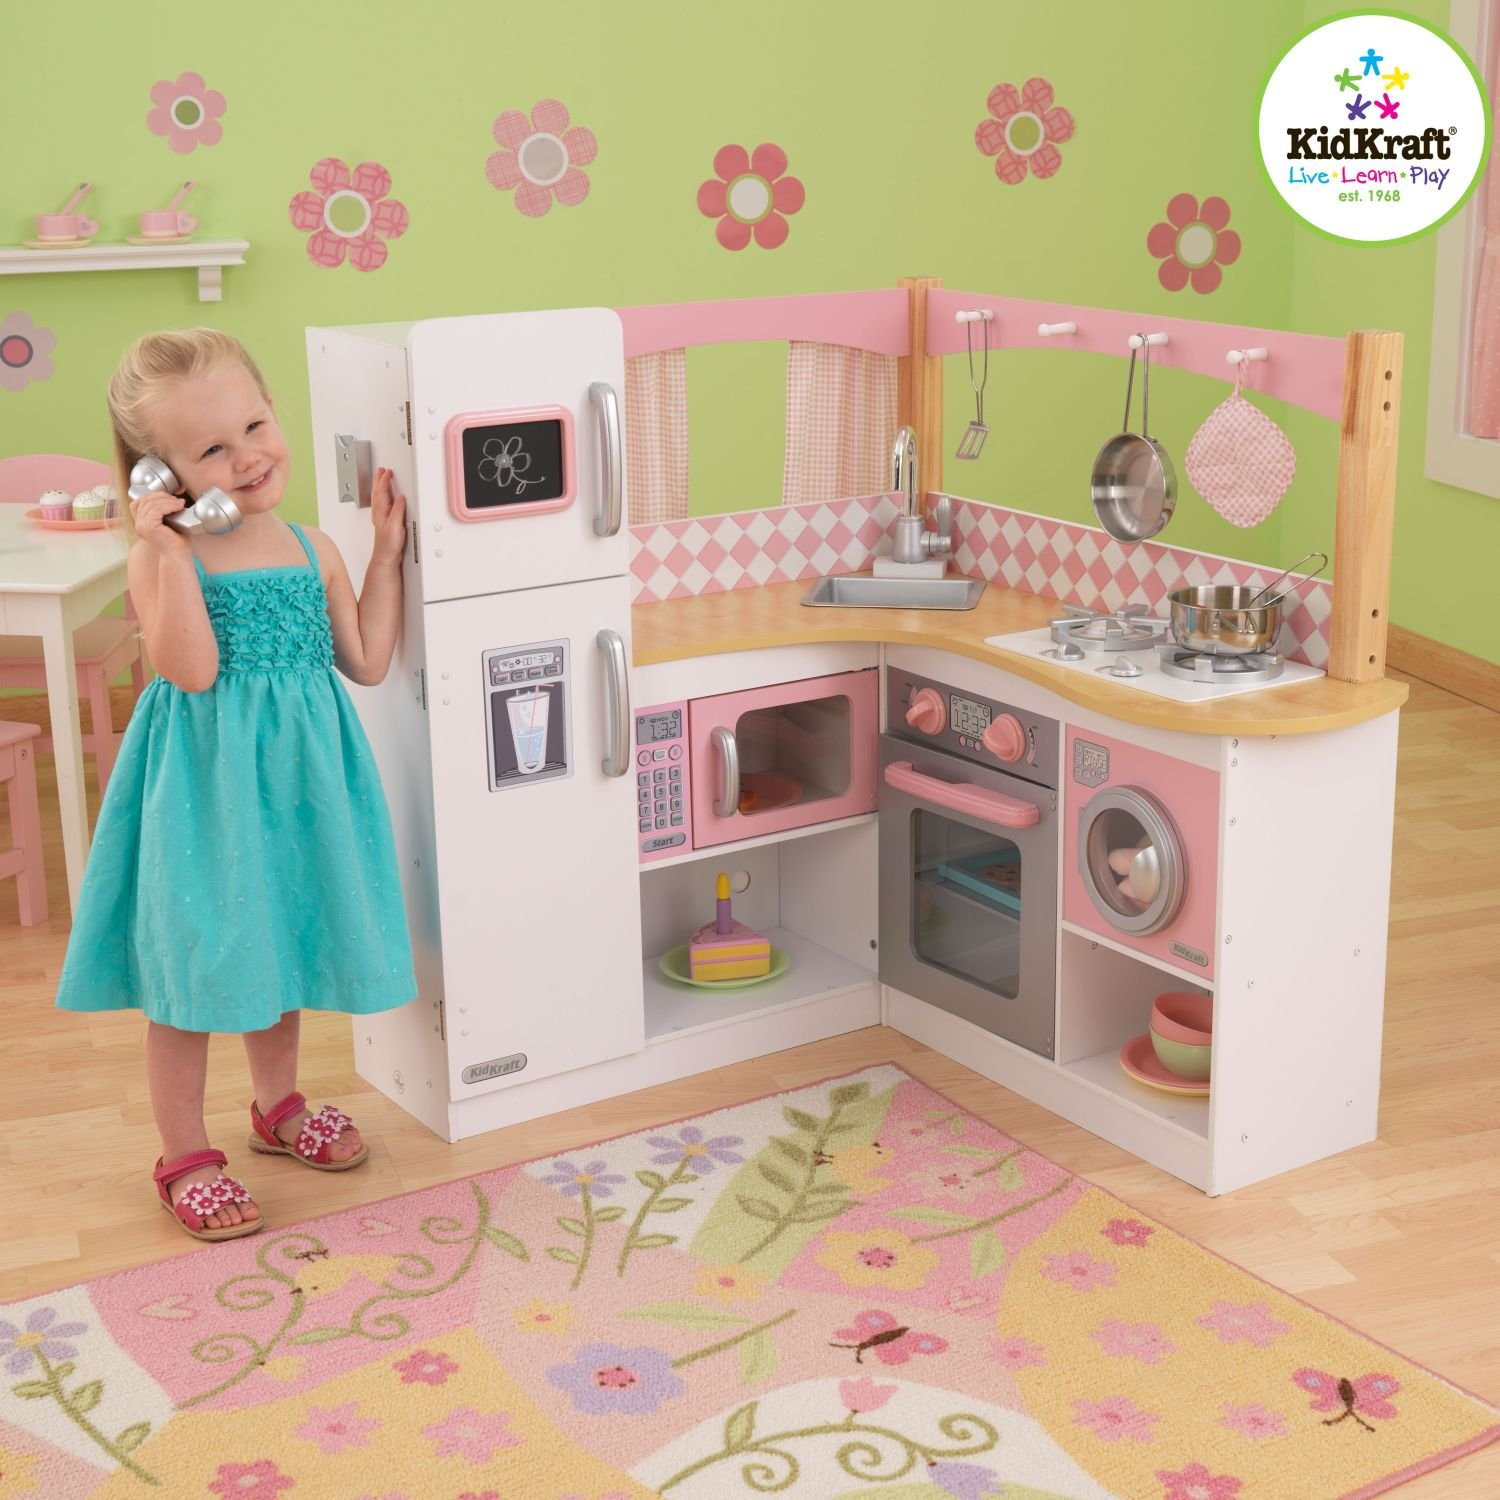 kidkraft grand gourmet corner kitchen play set glass inserts for cabinets kids playsets classy baby gear